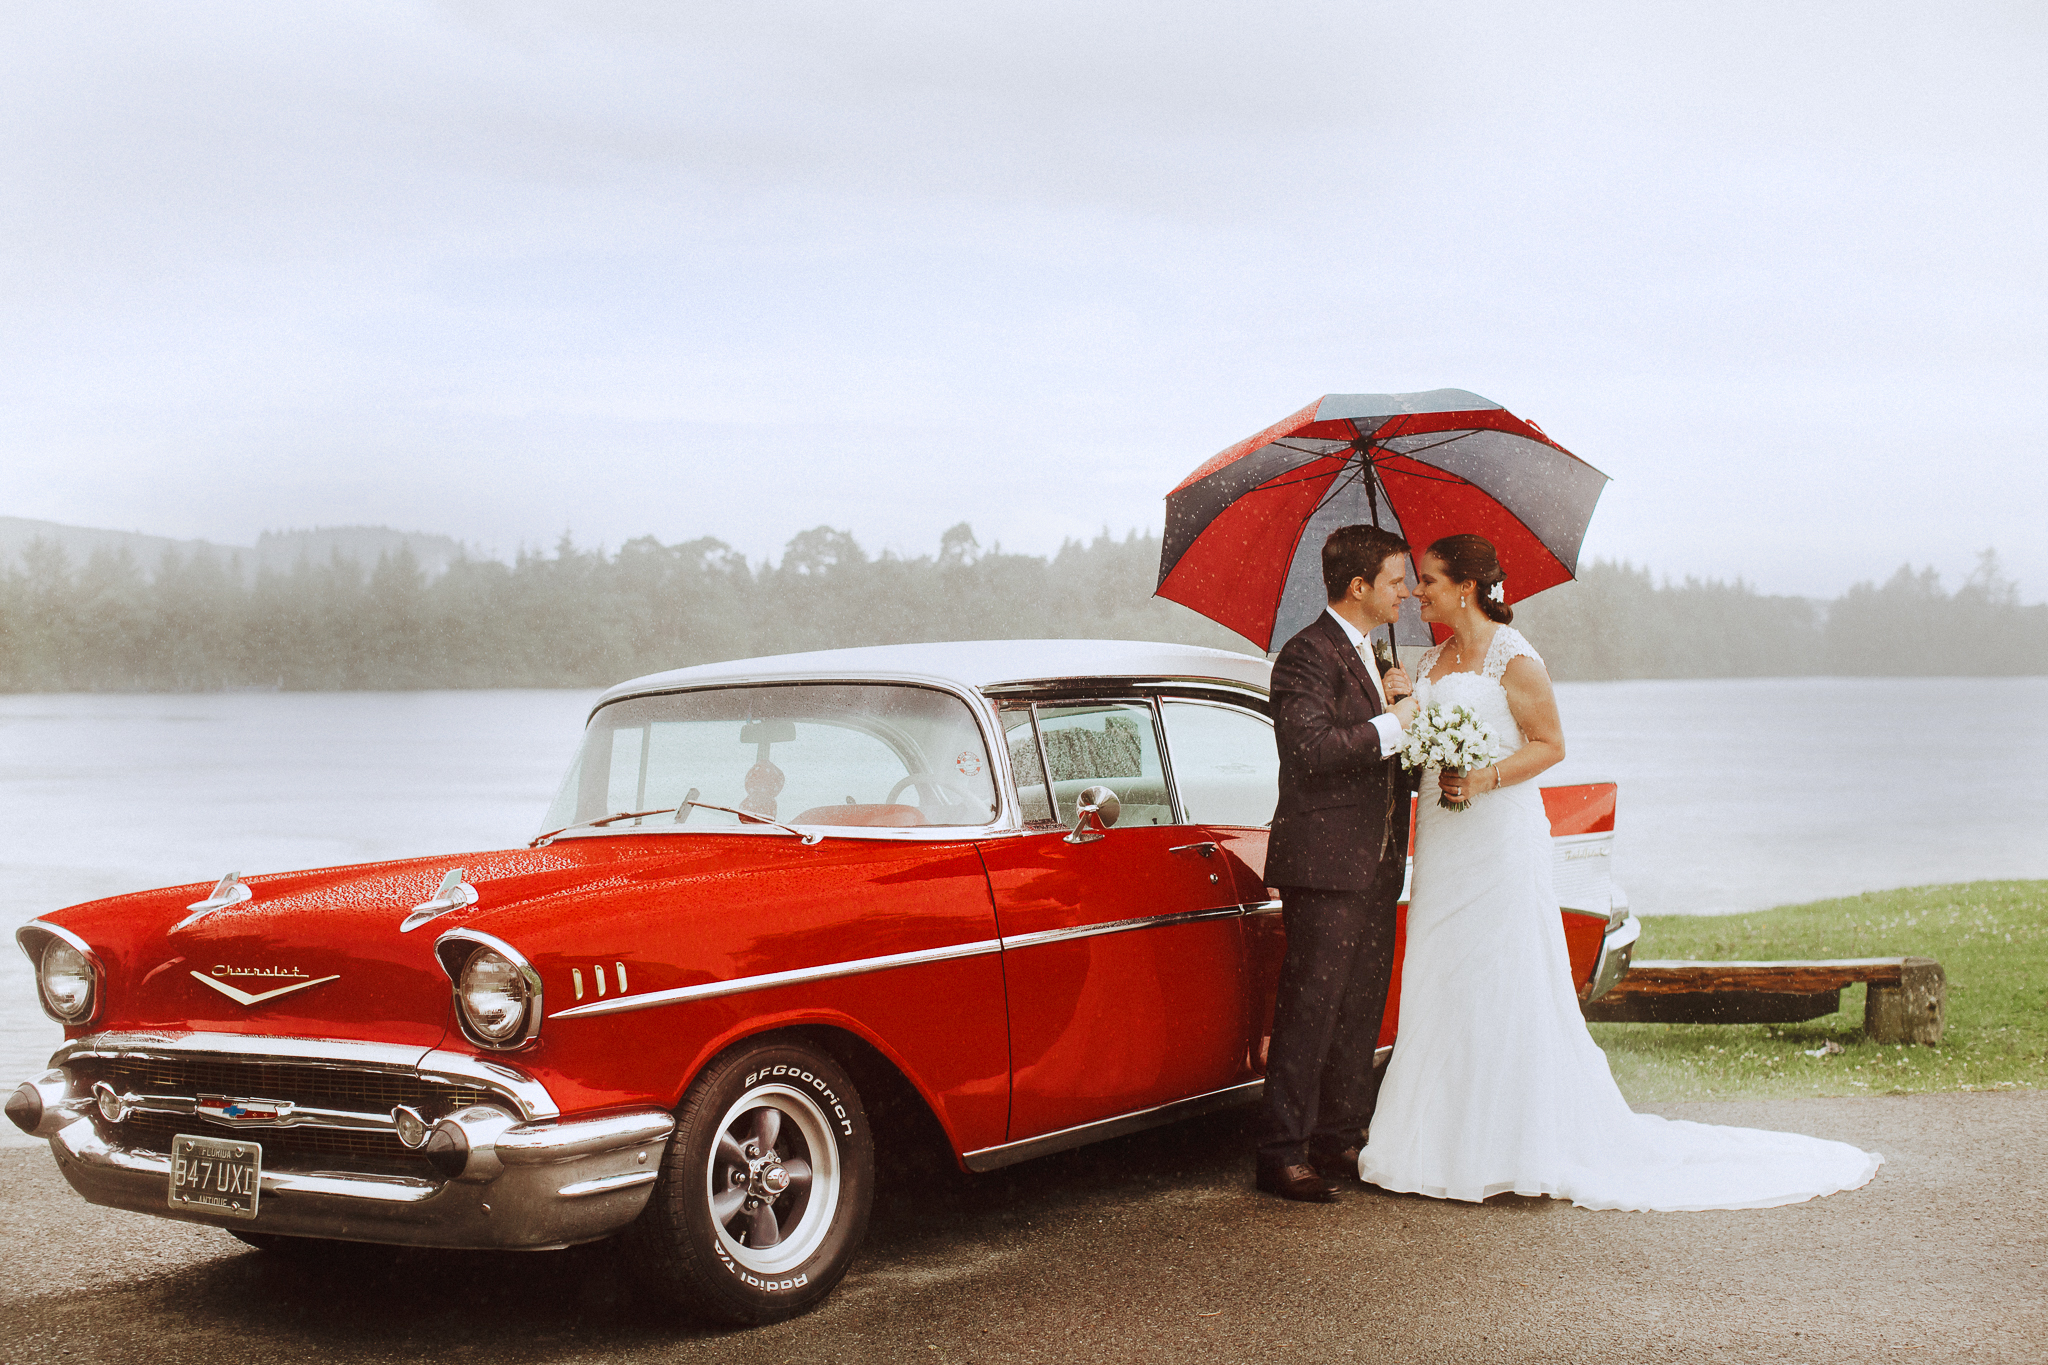 Wedding with a red chevy, Ireland